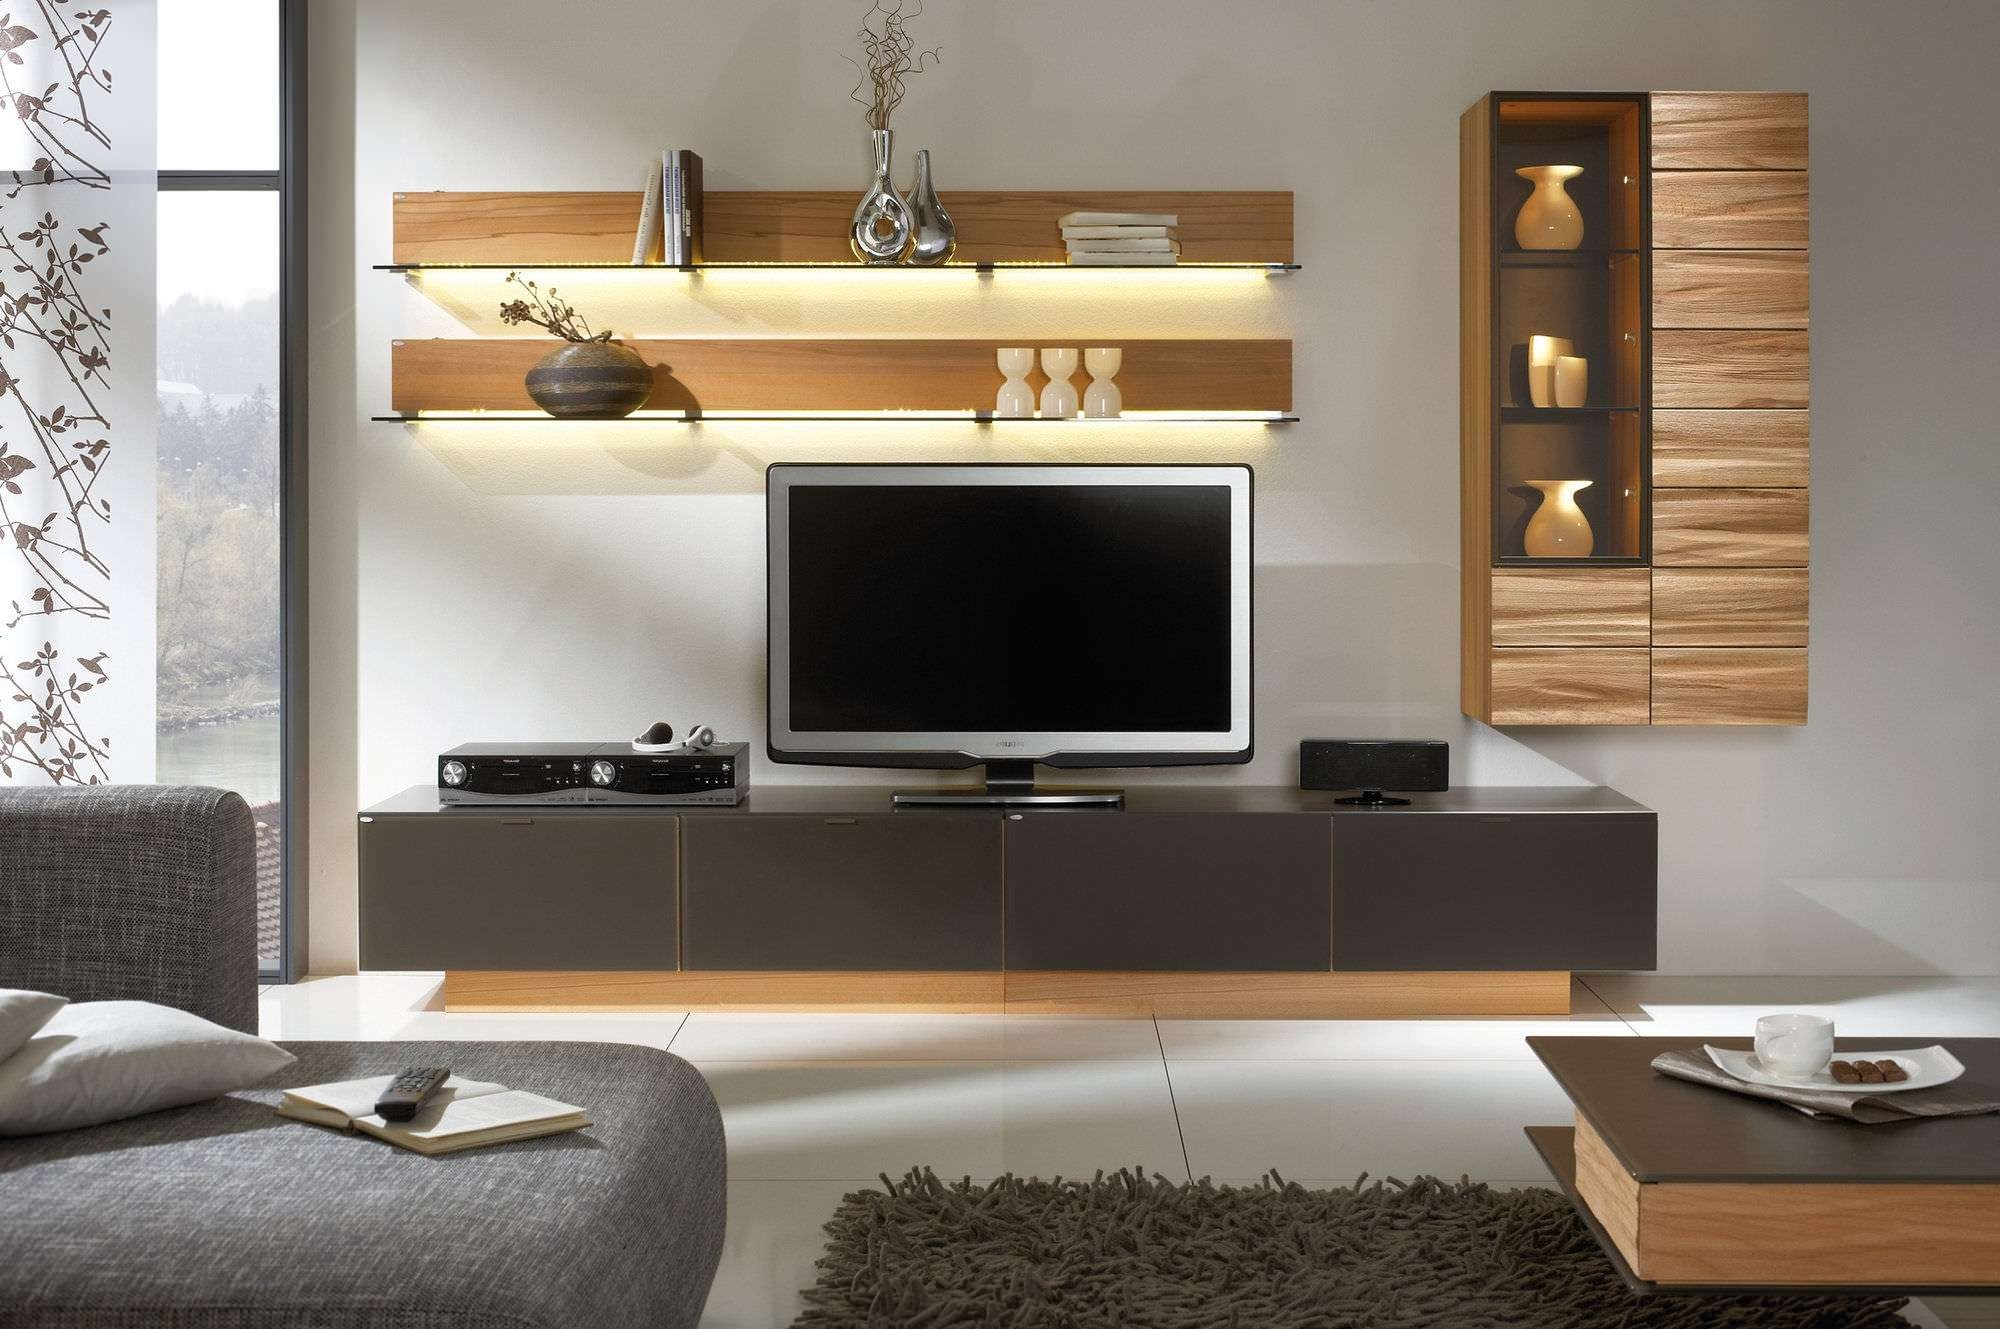 Stylish Design Living Room Tv Cabinet Beautiful Tv Cabinet Designs Regarding Living Room Tv Cabinets (View 5 of 20)